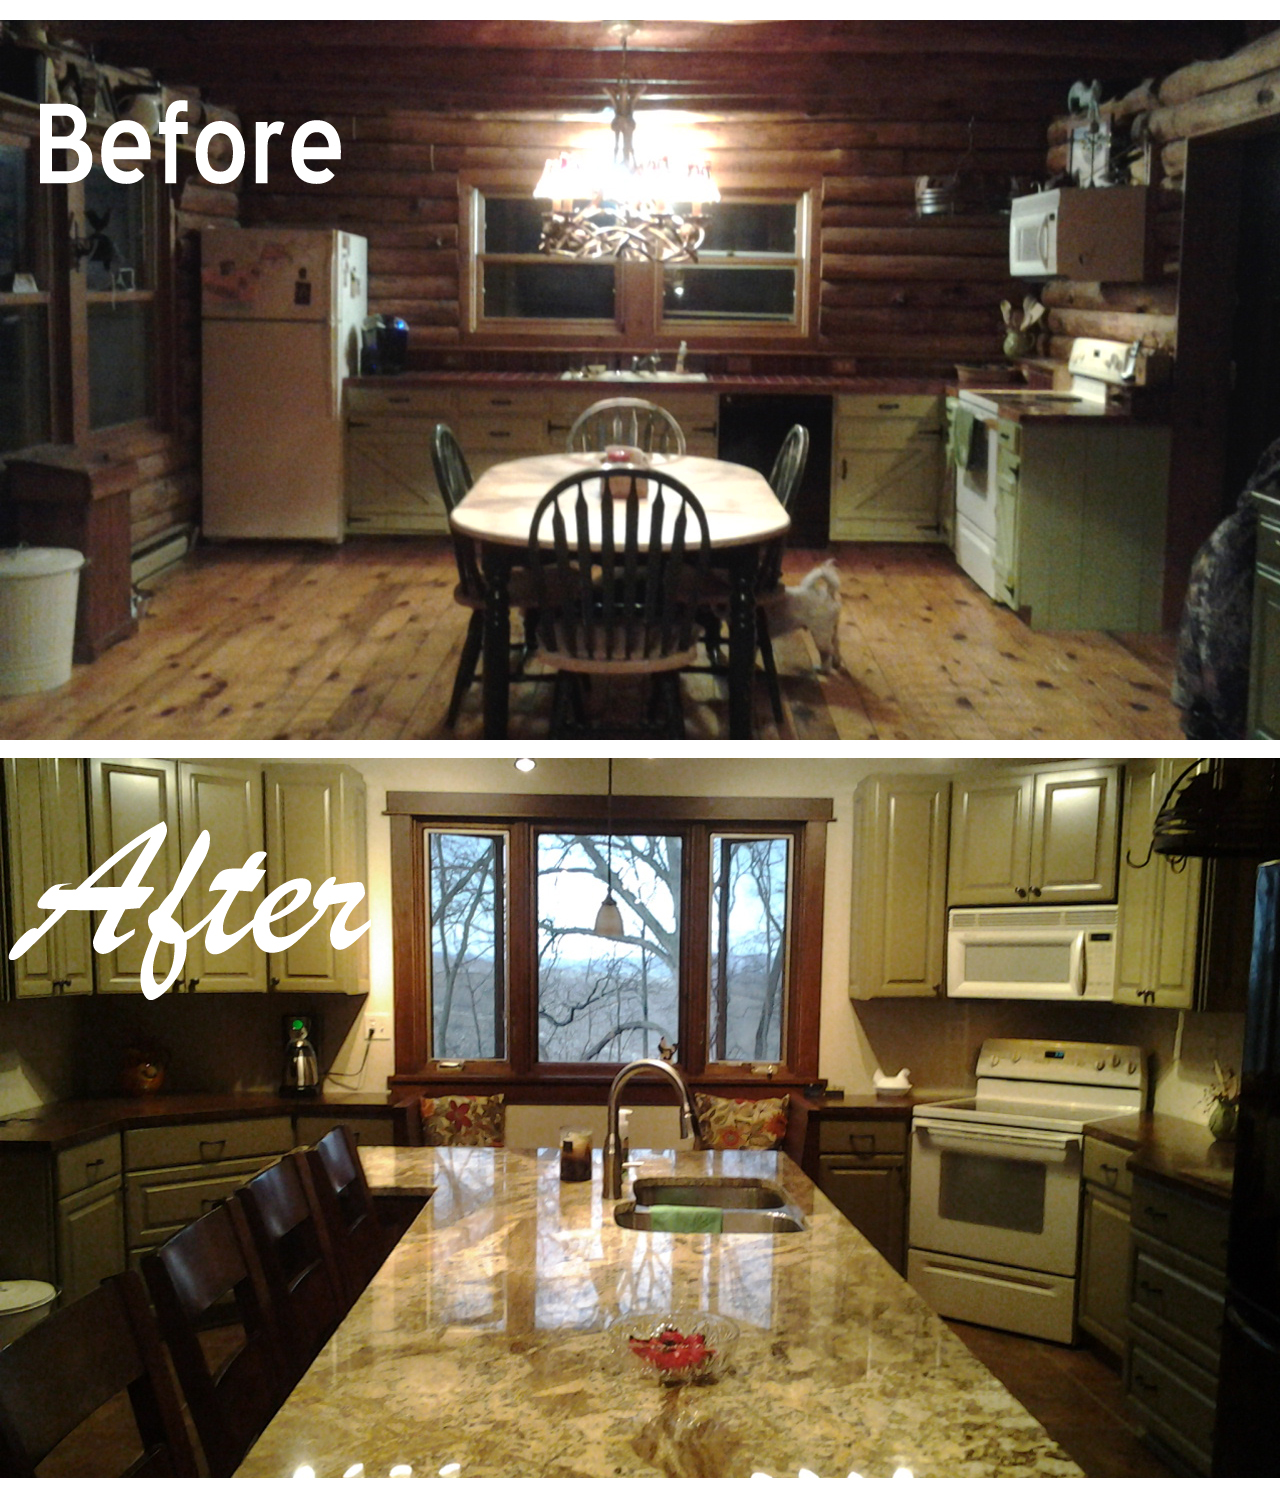 Galley Kitchen Remodels Before And After: Kitchen Remodel Before And After